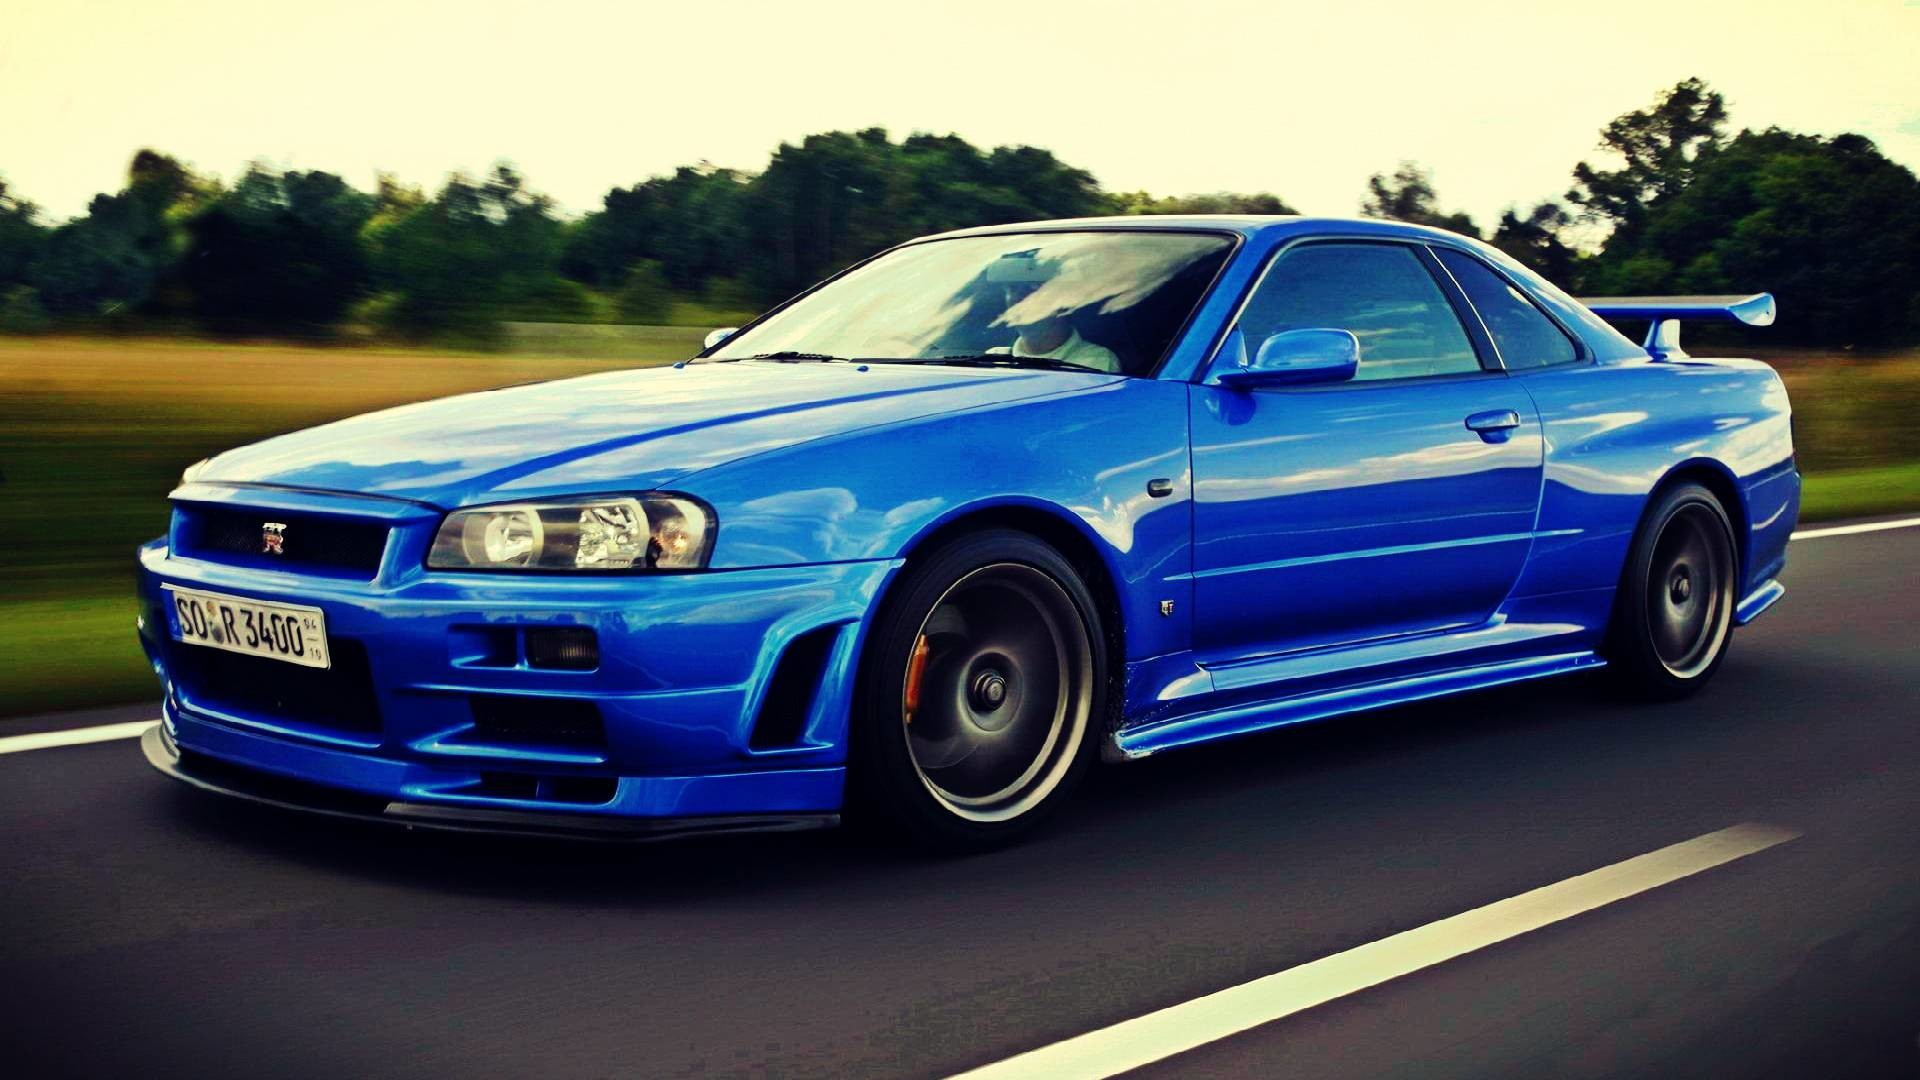 1920x1080 Nissan Skyline GTR R34 Wallpapers Group (89+)